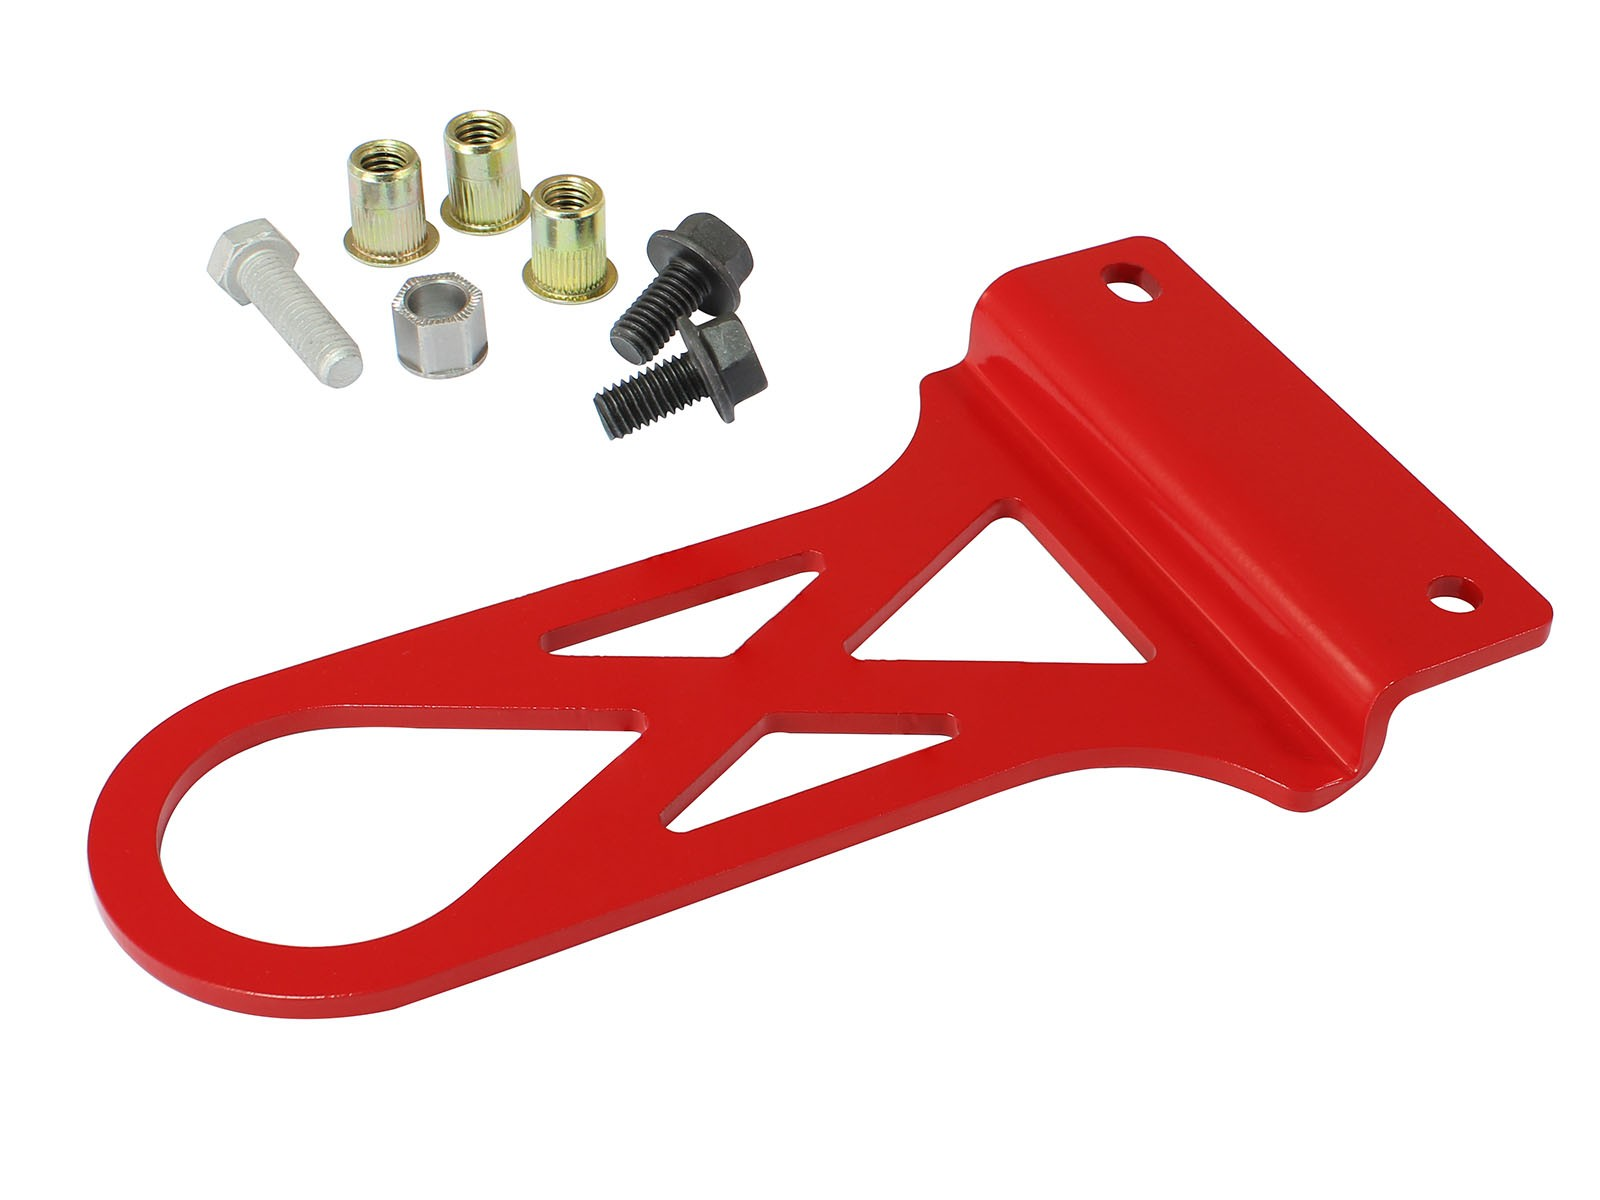 1997-2004 C5 Corvette aFe Power aFe Control PFADT Series Front Tow Hook - Red